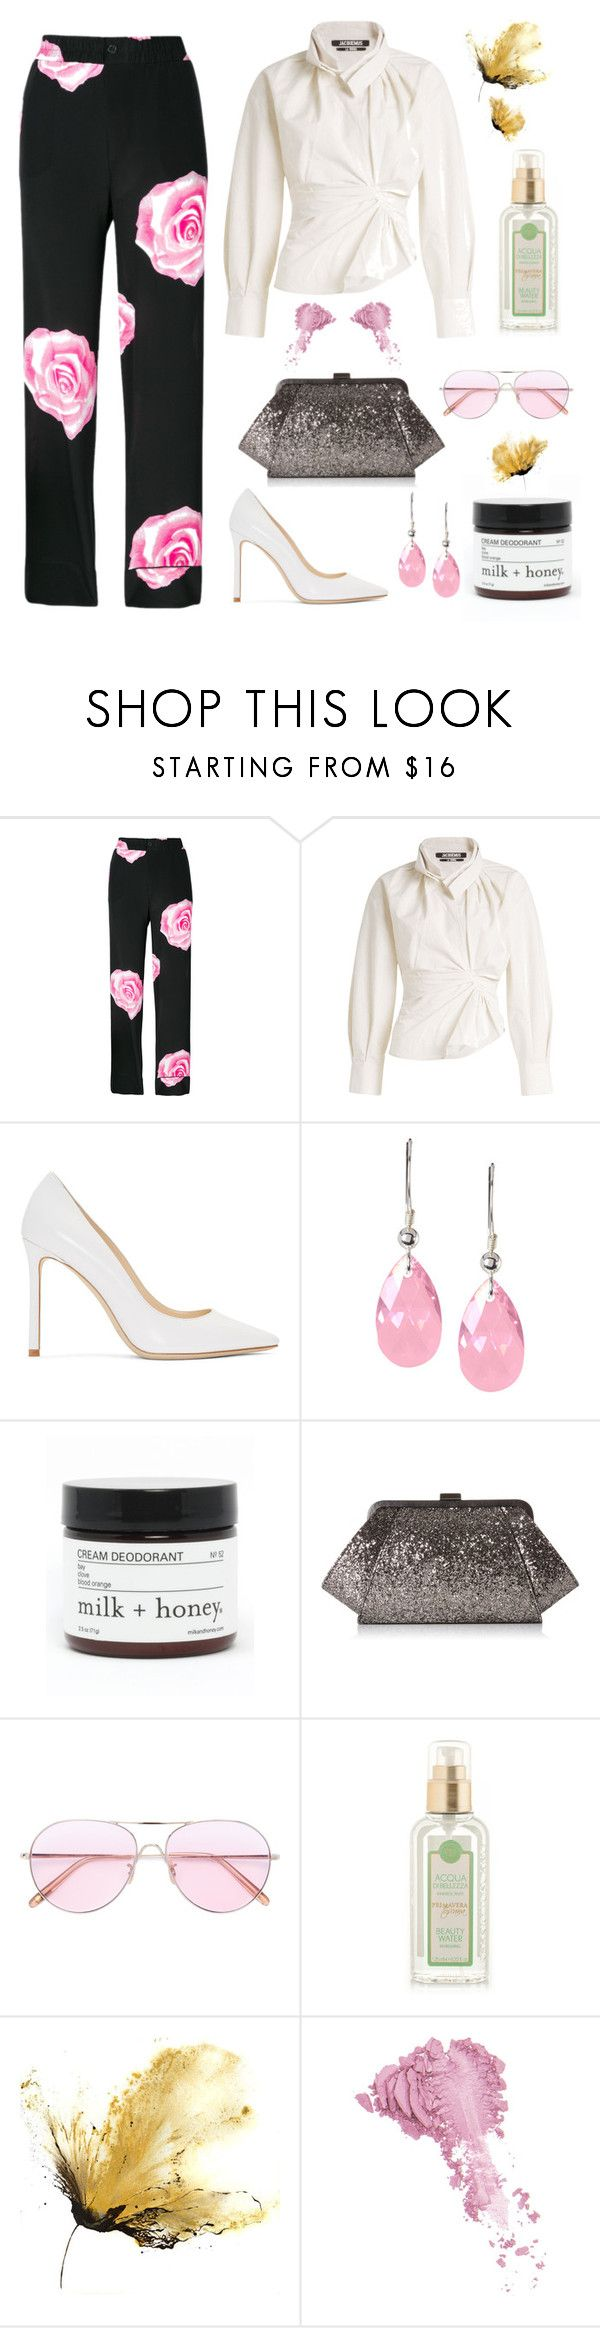 """Fit for it"" by helene-franck ❤ liked on Polyvore featuring Ganni, Jacquemus, Jimmy Choo, Sevil Designs, Milk + Honey, ZAC Zac Posen, Oliver Peoples and Bésame"